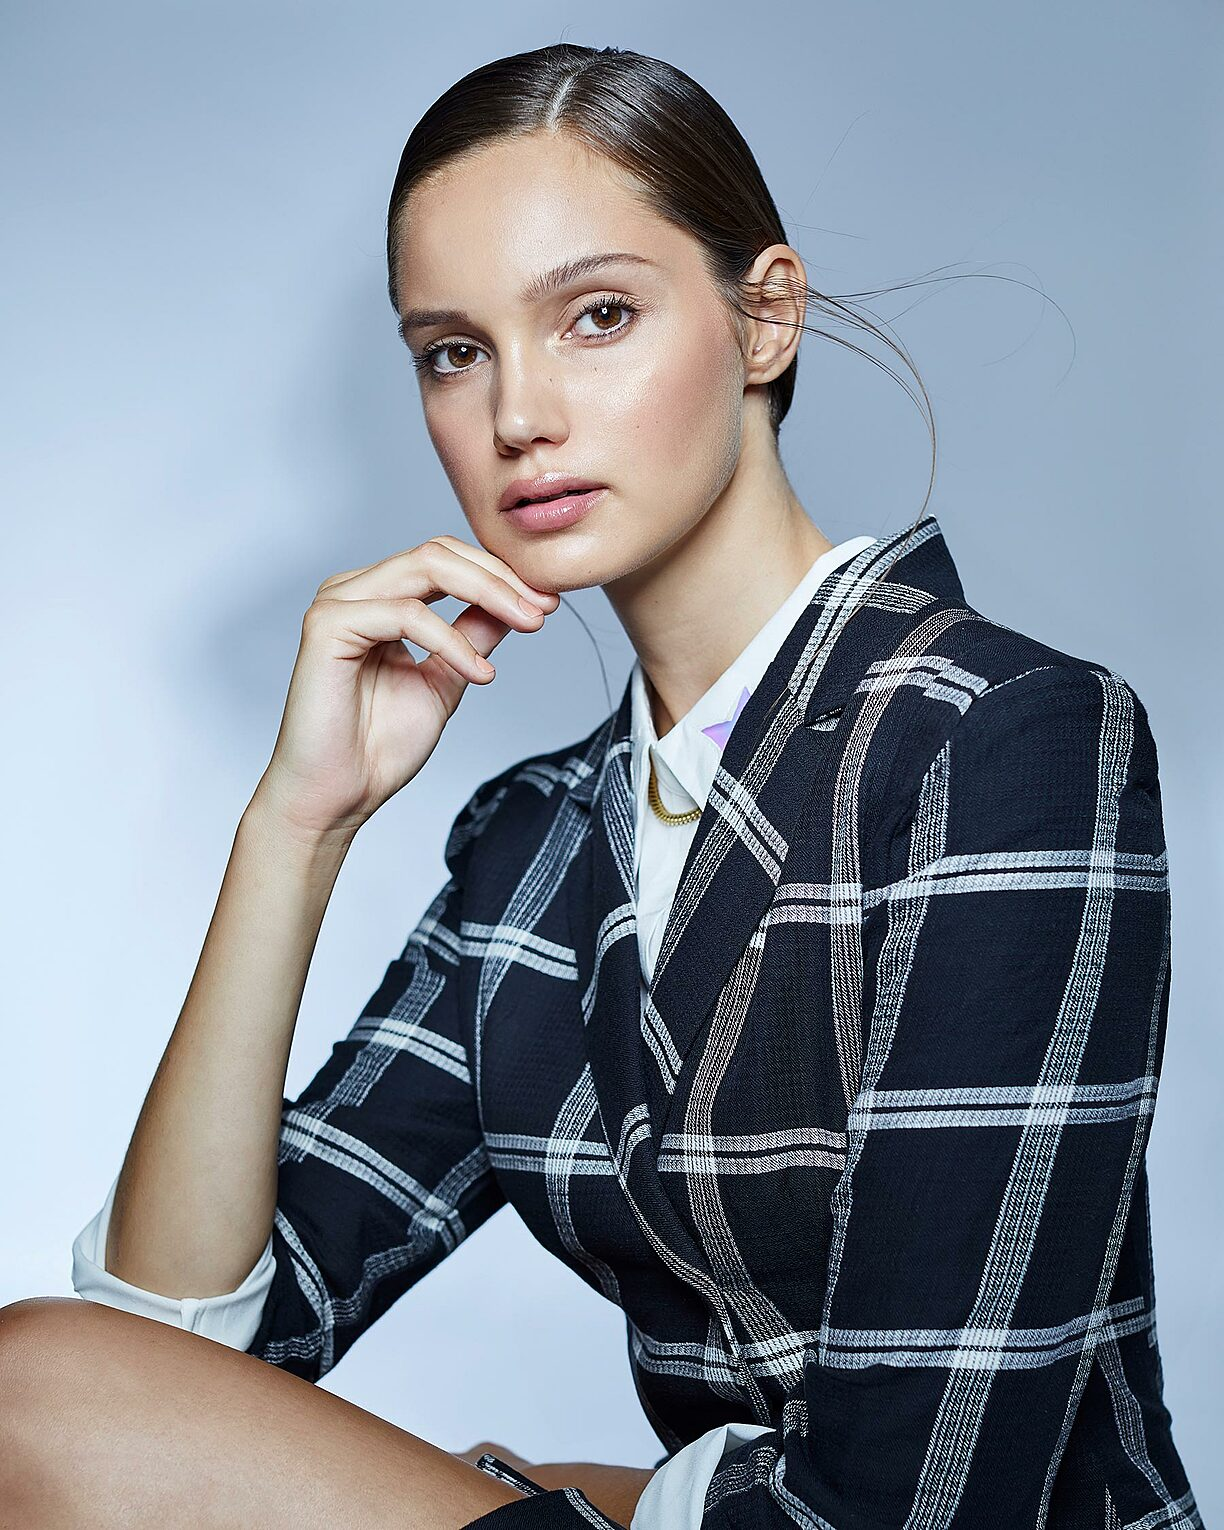 A female model who wears a checked blazer with a white blouse and sleek brown hair